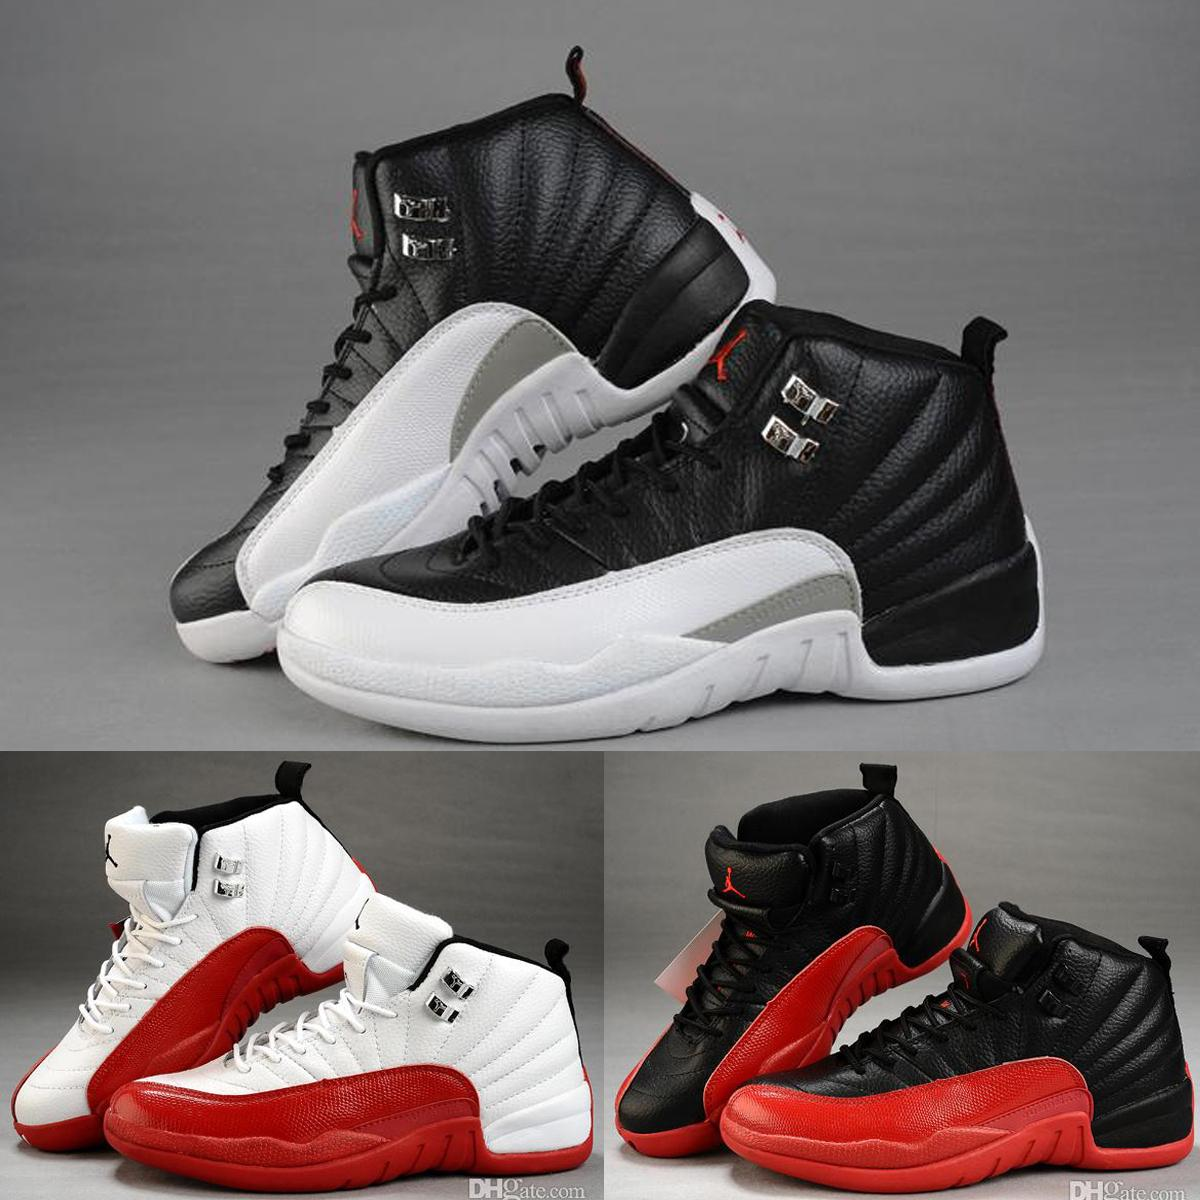 050b52fb4e3d2 ... red white 308317 004 f1e05 3307c; switzerland nike air jordan 12 xii  taxi playoff black flu game cherry mens womens basketball shoes